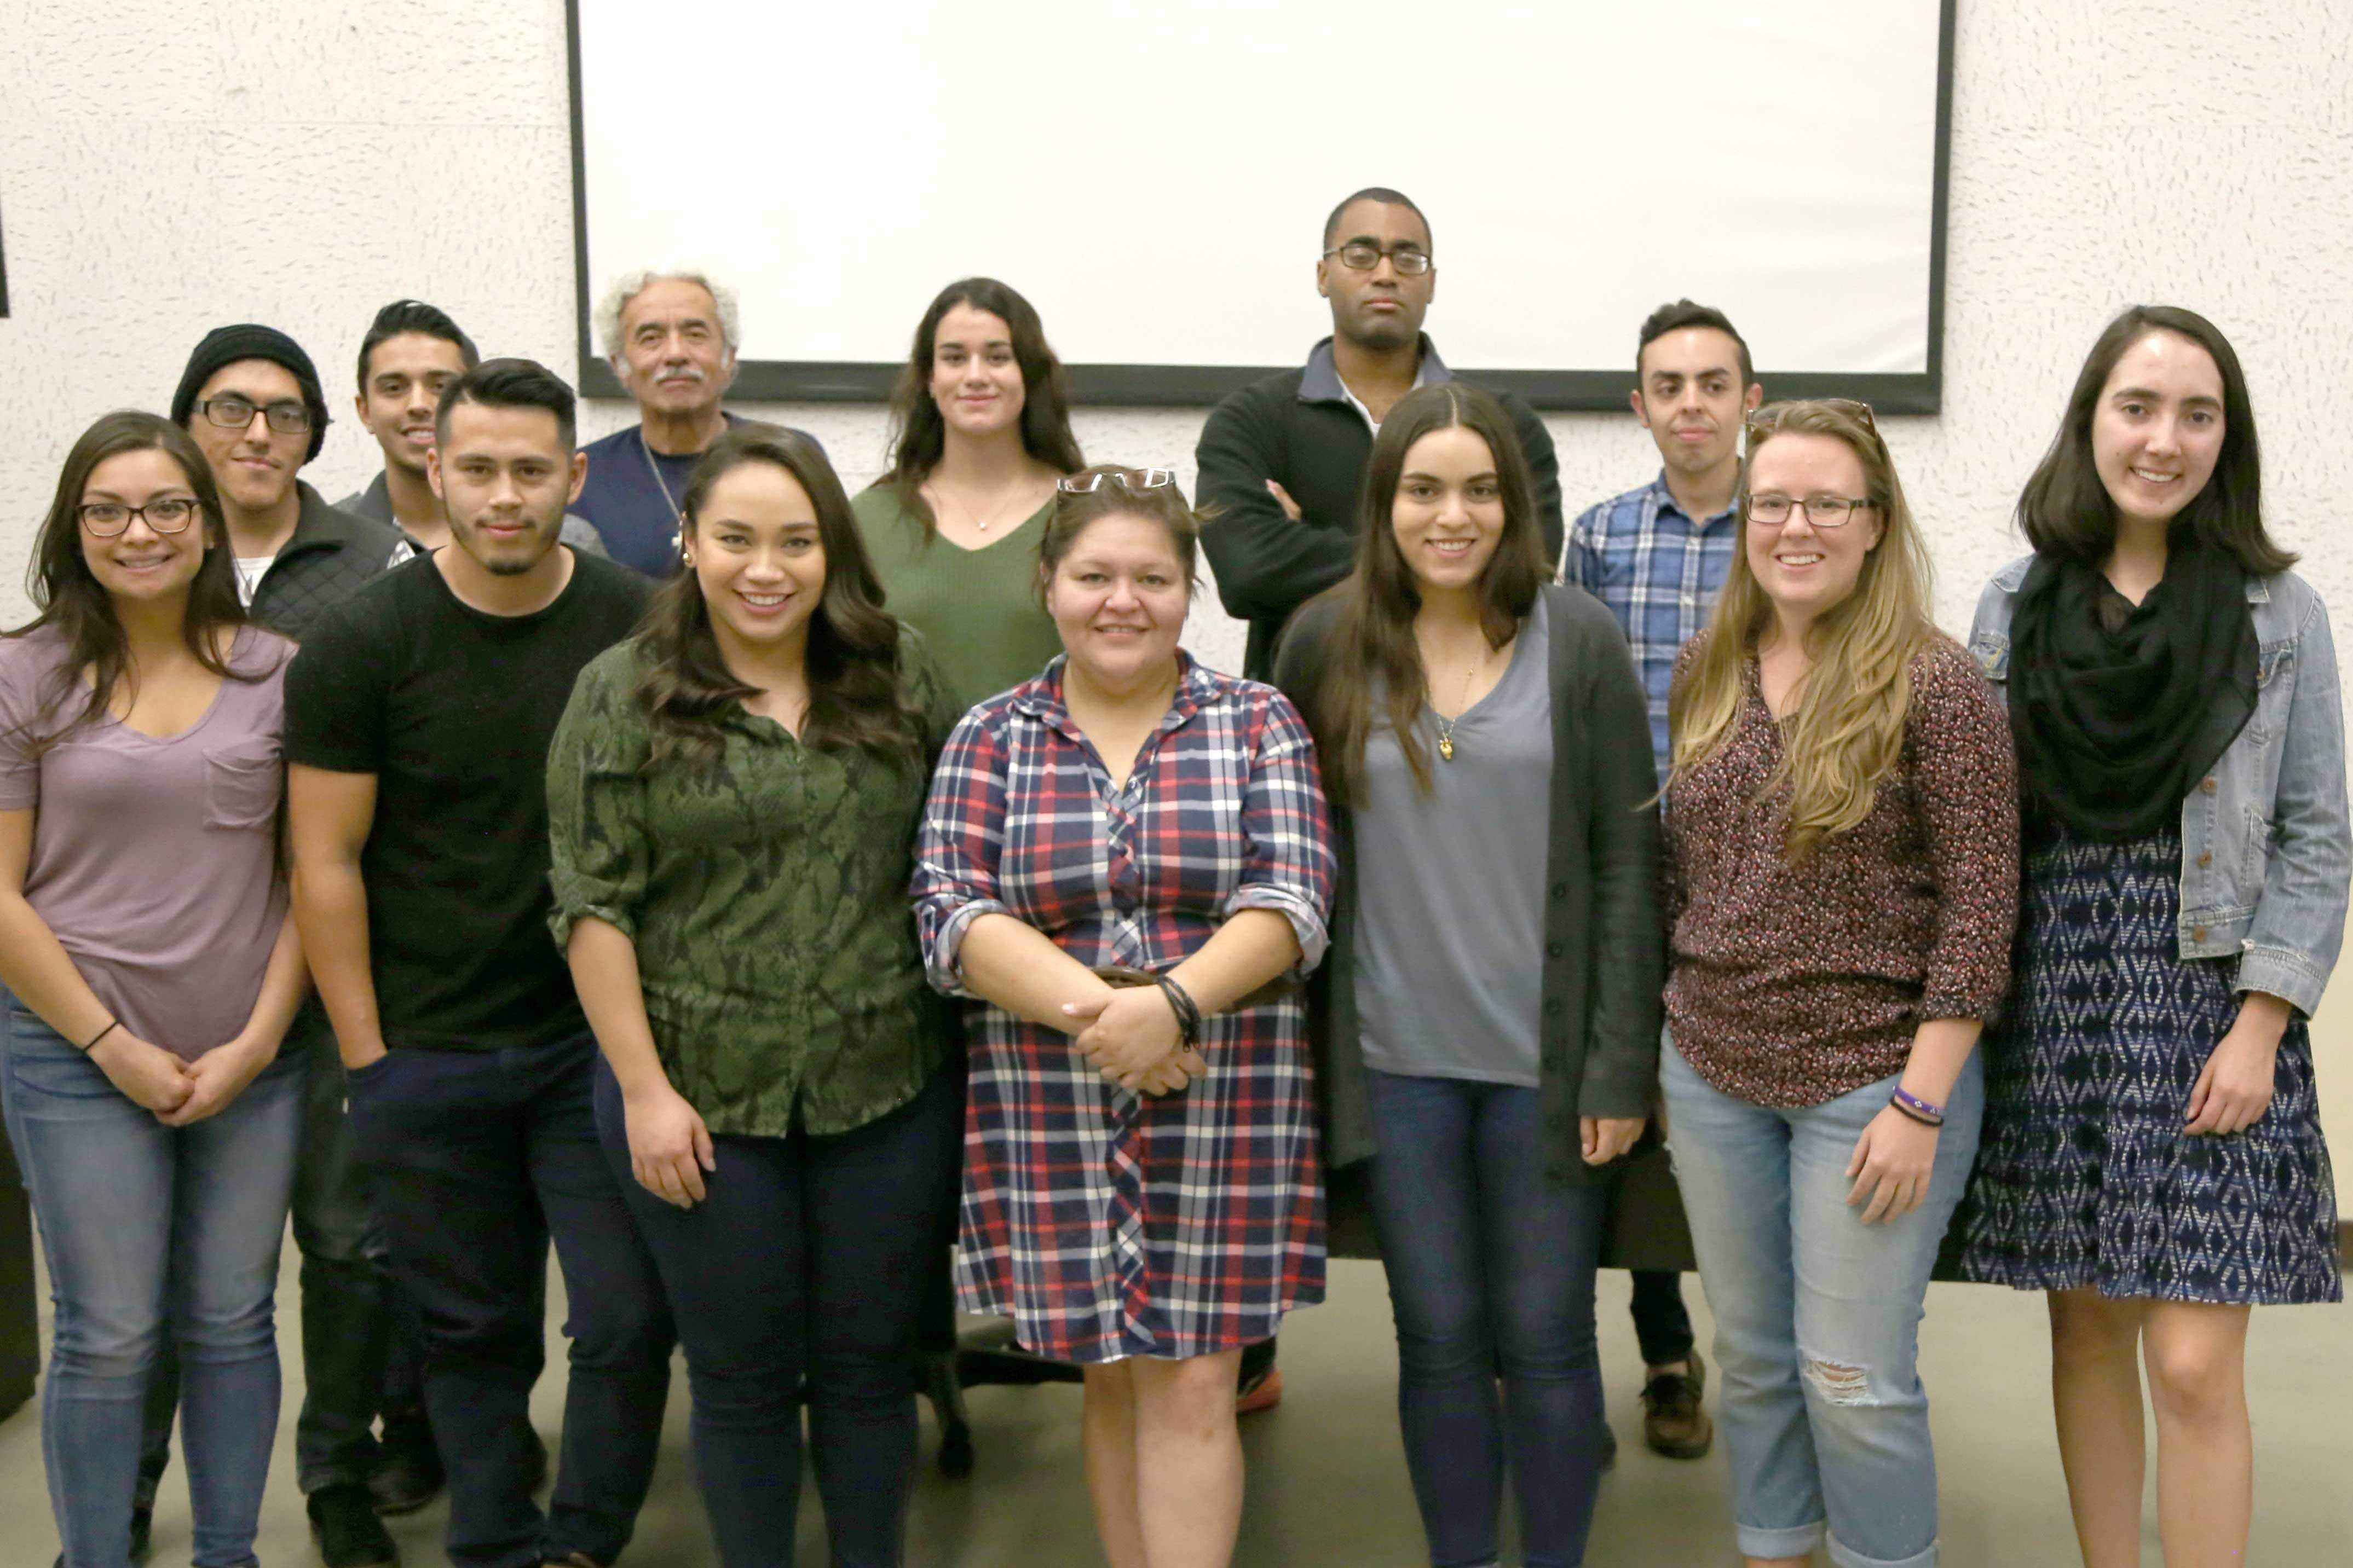 Sandra Salas (center) poses with students from the UTEP Advertising Federation last Thursday after giving a speech on her personal journey.